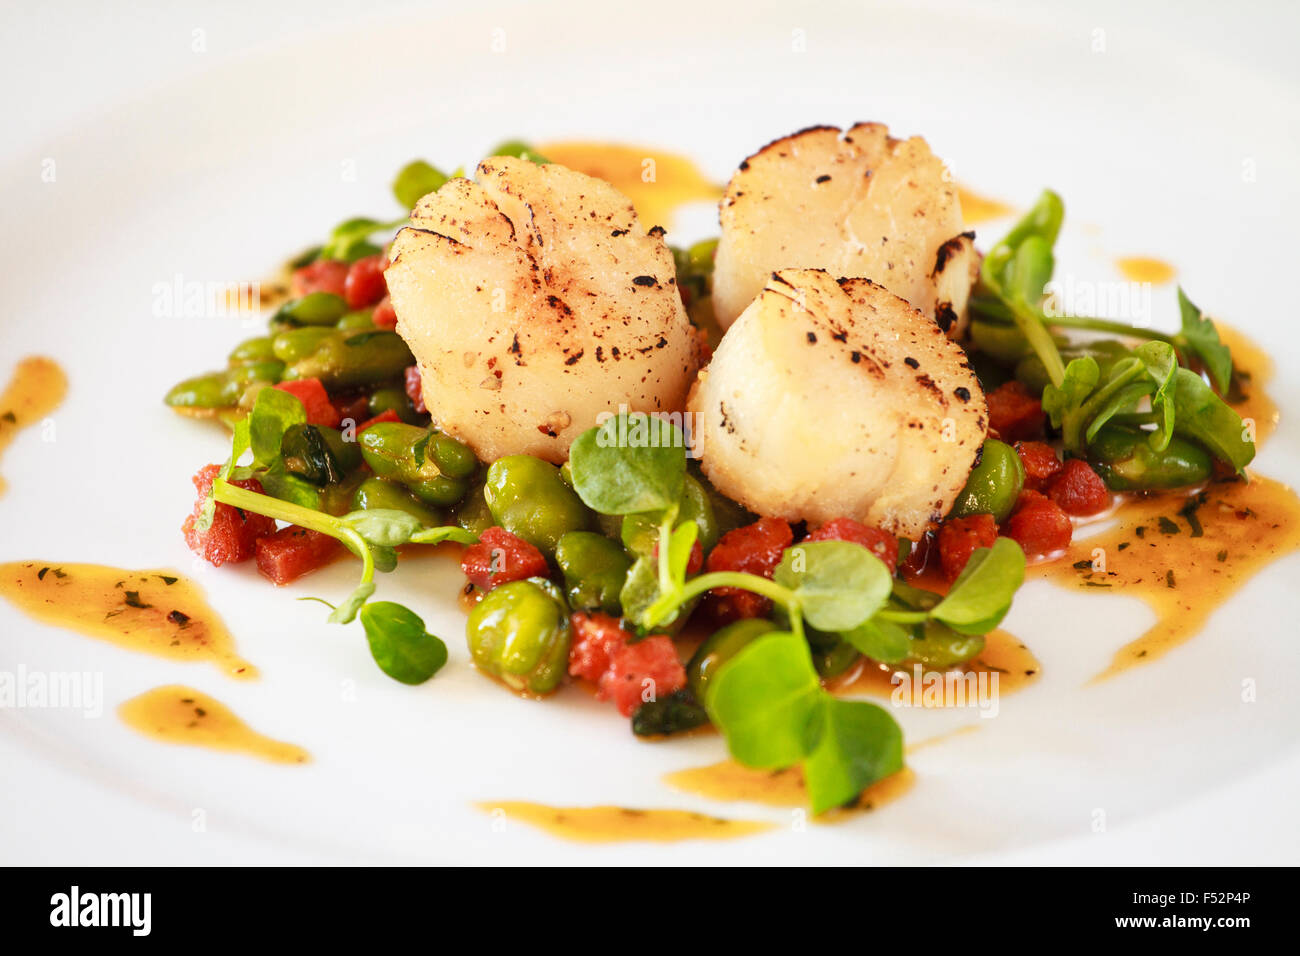 Pan fried scallops with Broad beans & chorizo - Stock Image